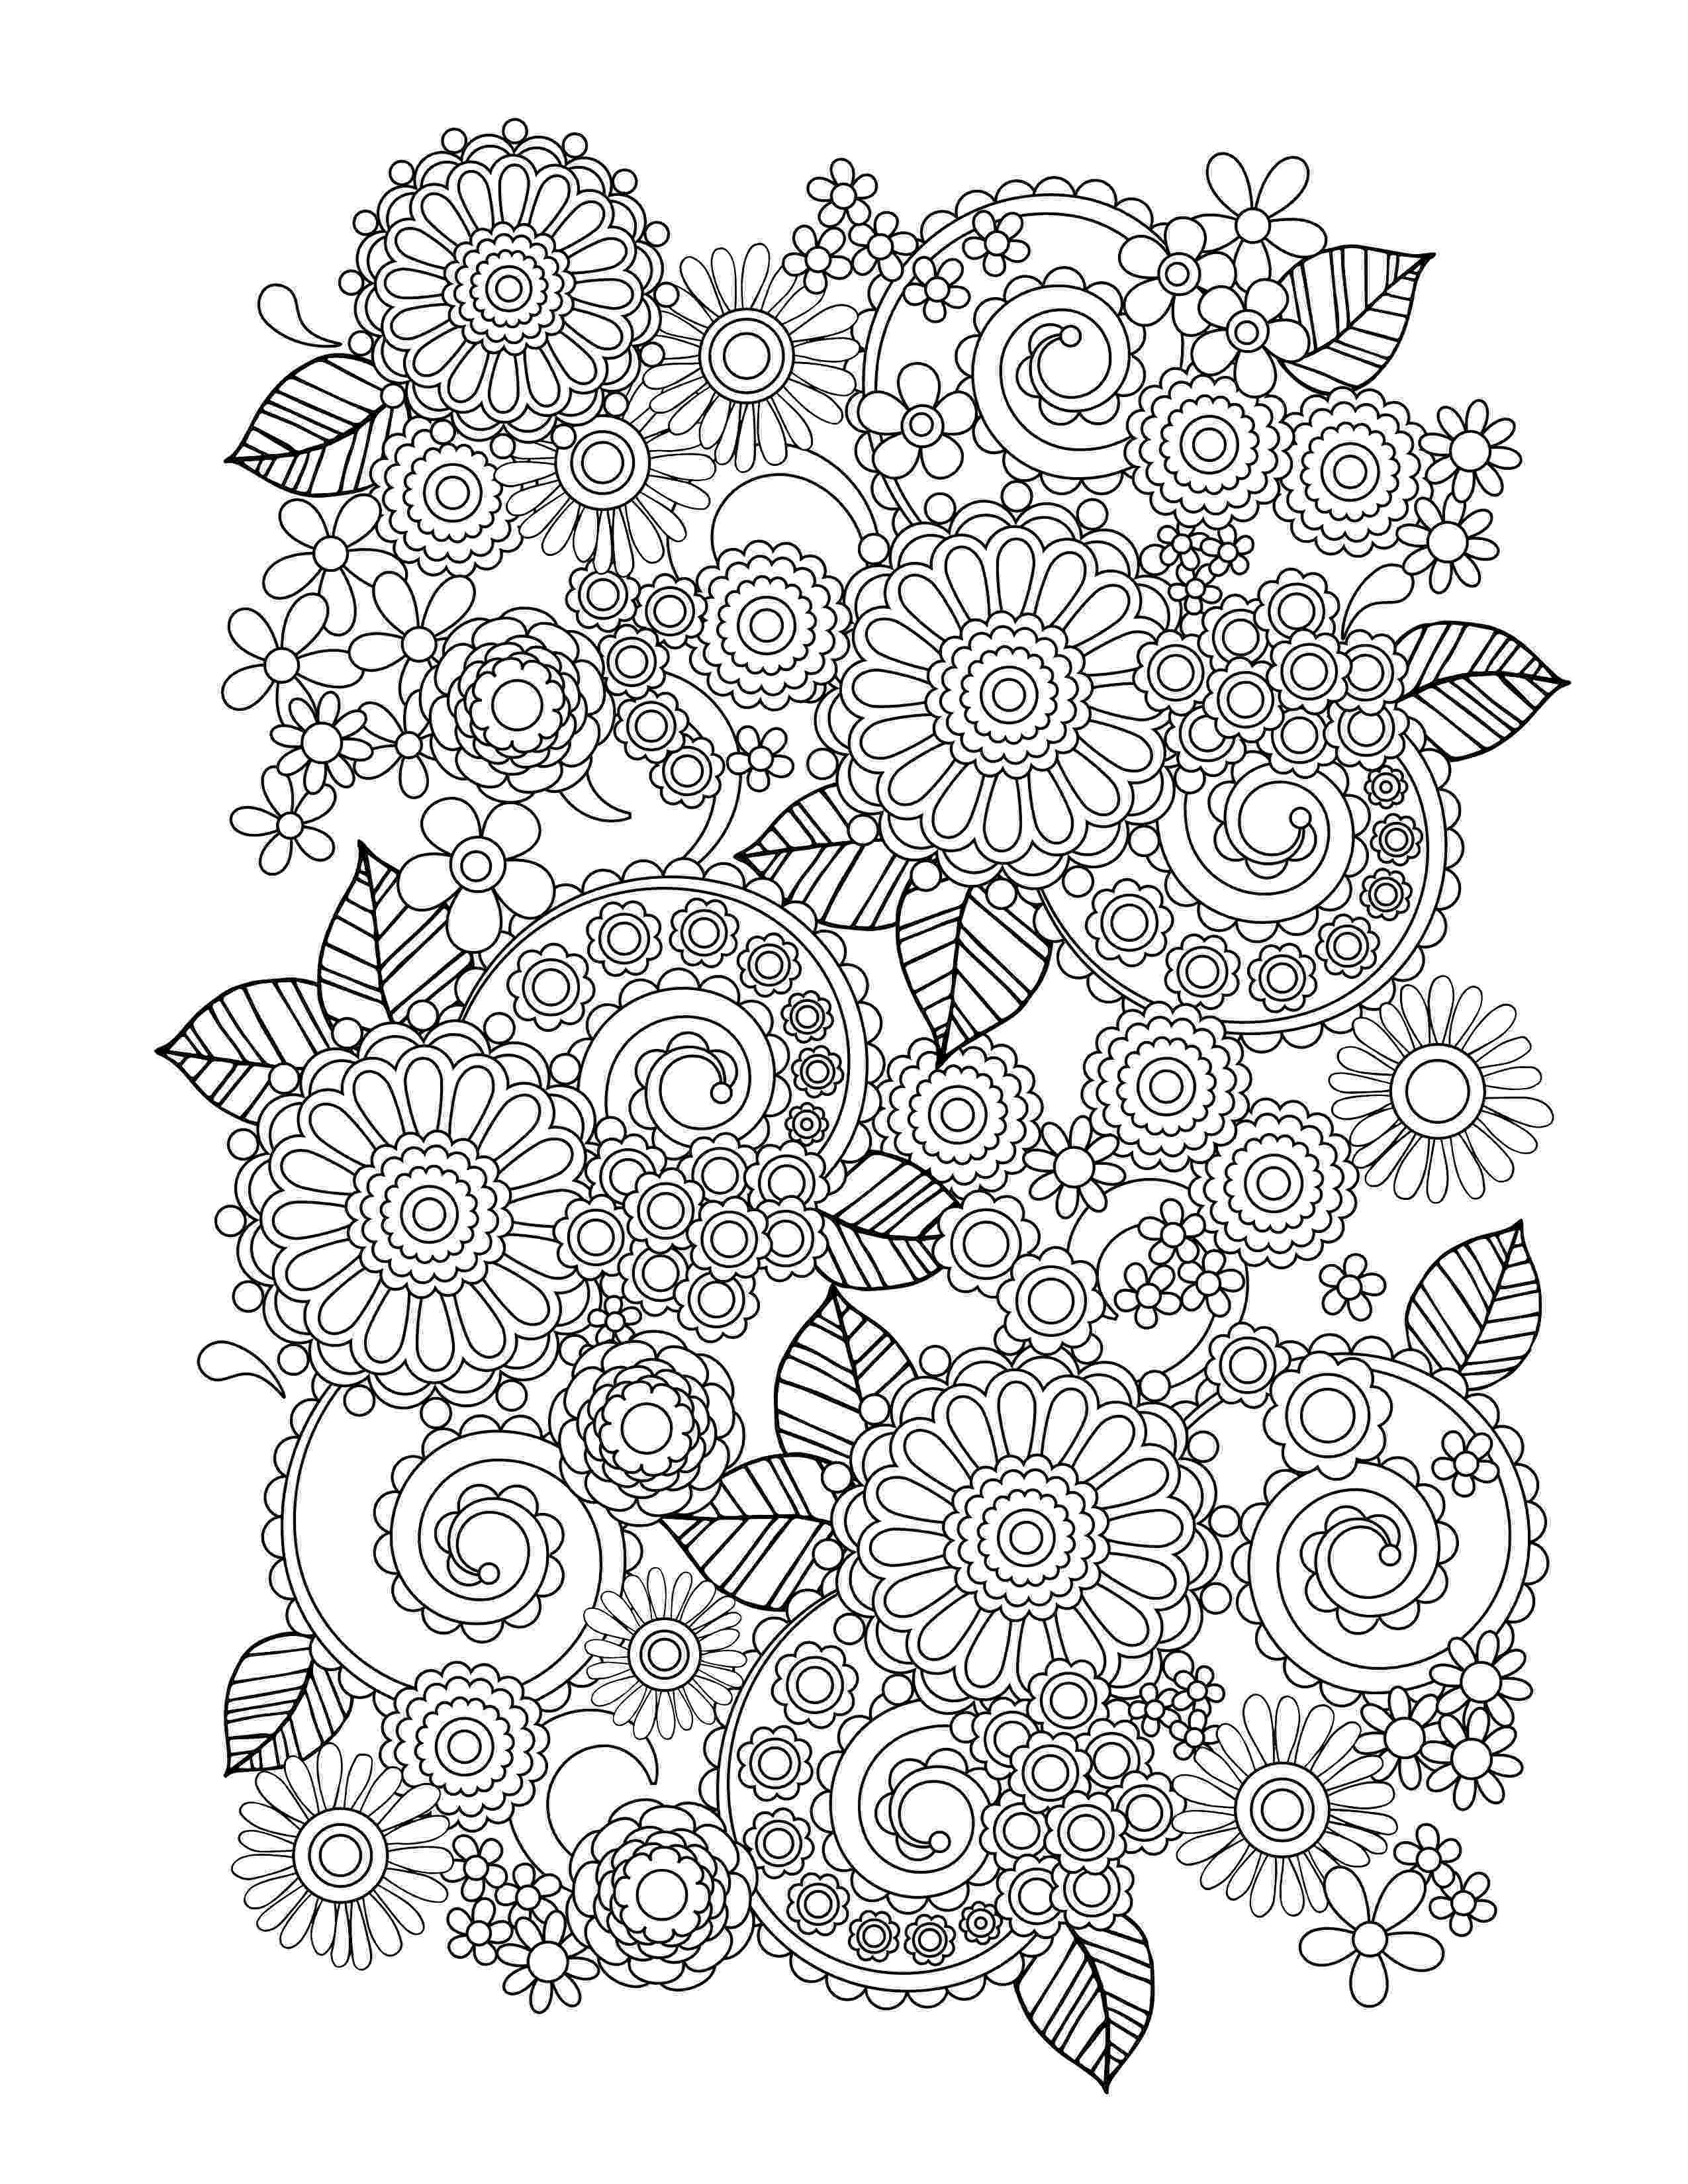 coloring pages online for adults flower coloring pages for adults best coloring pages for pages for coloring online adults